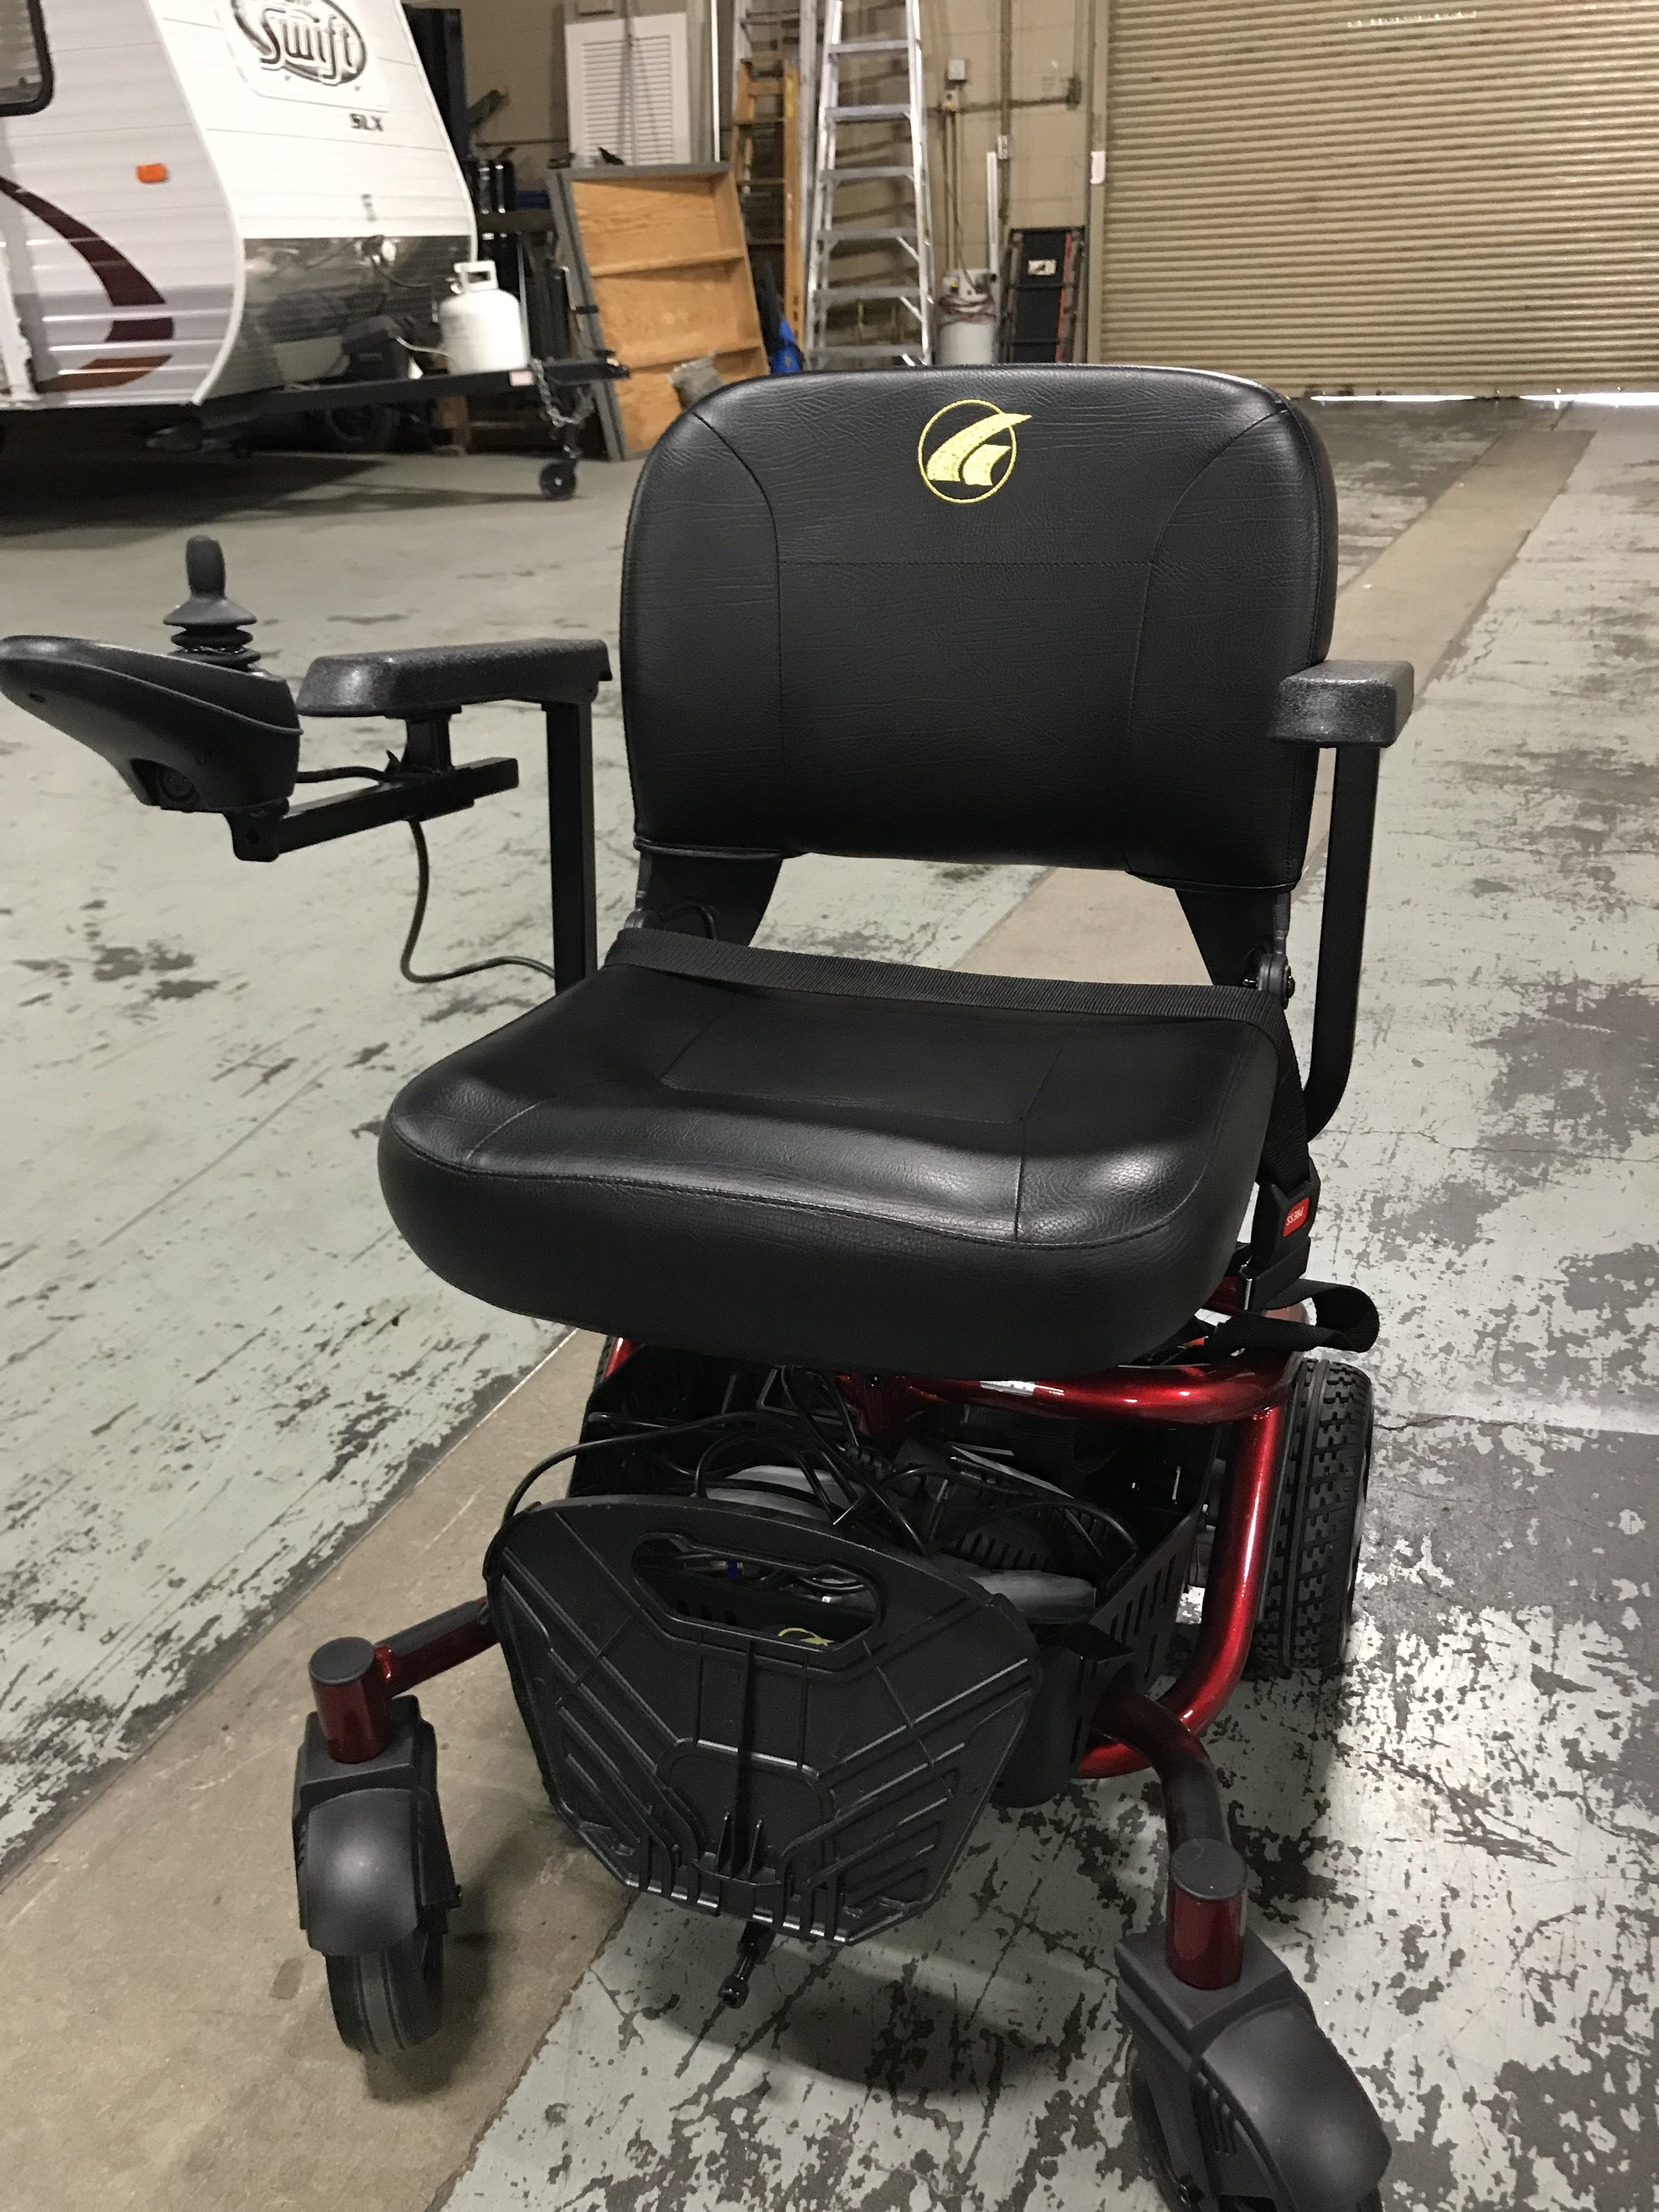 golden power chair patio table with swivel chairs literider envy mccann s medical